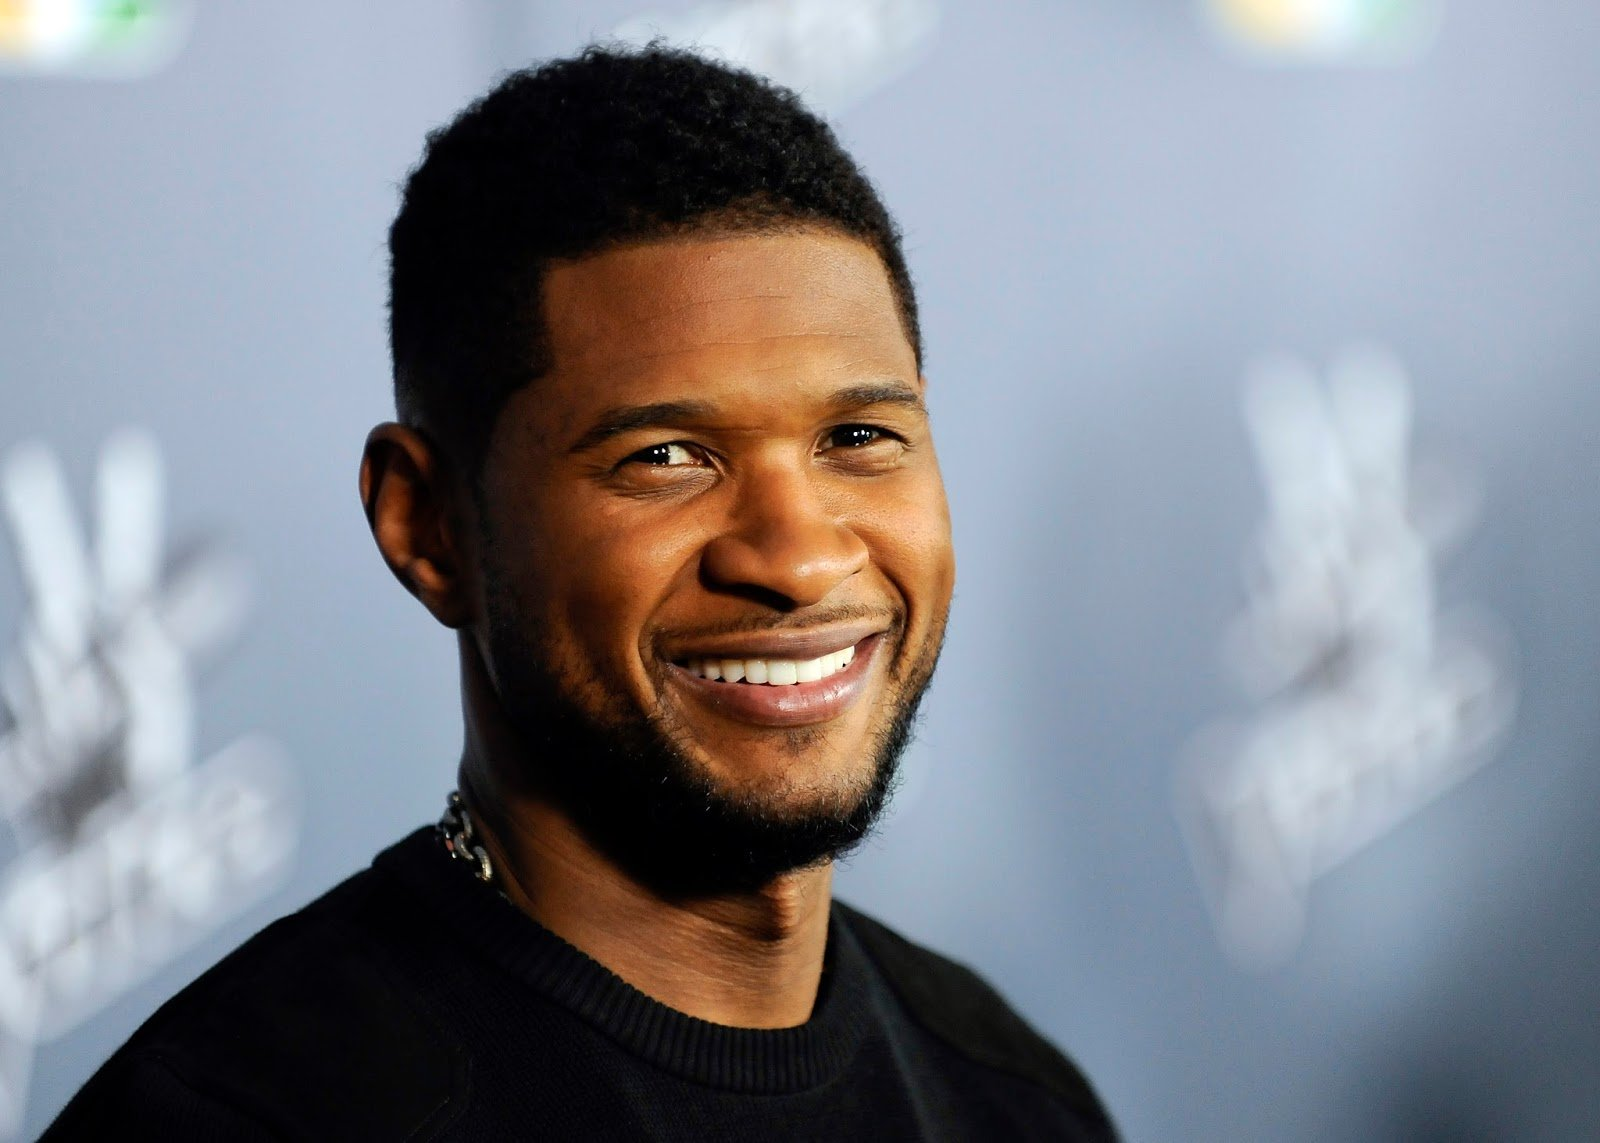 Usher Does Not Have Herpes, Takes Legal Action Against False Accusers